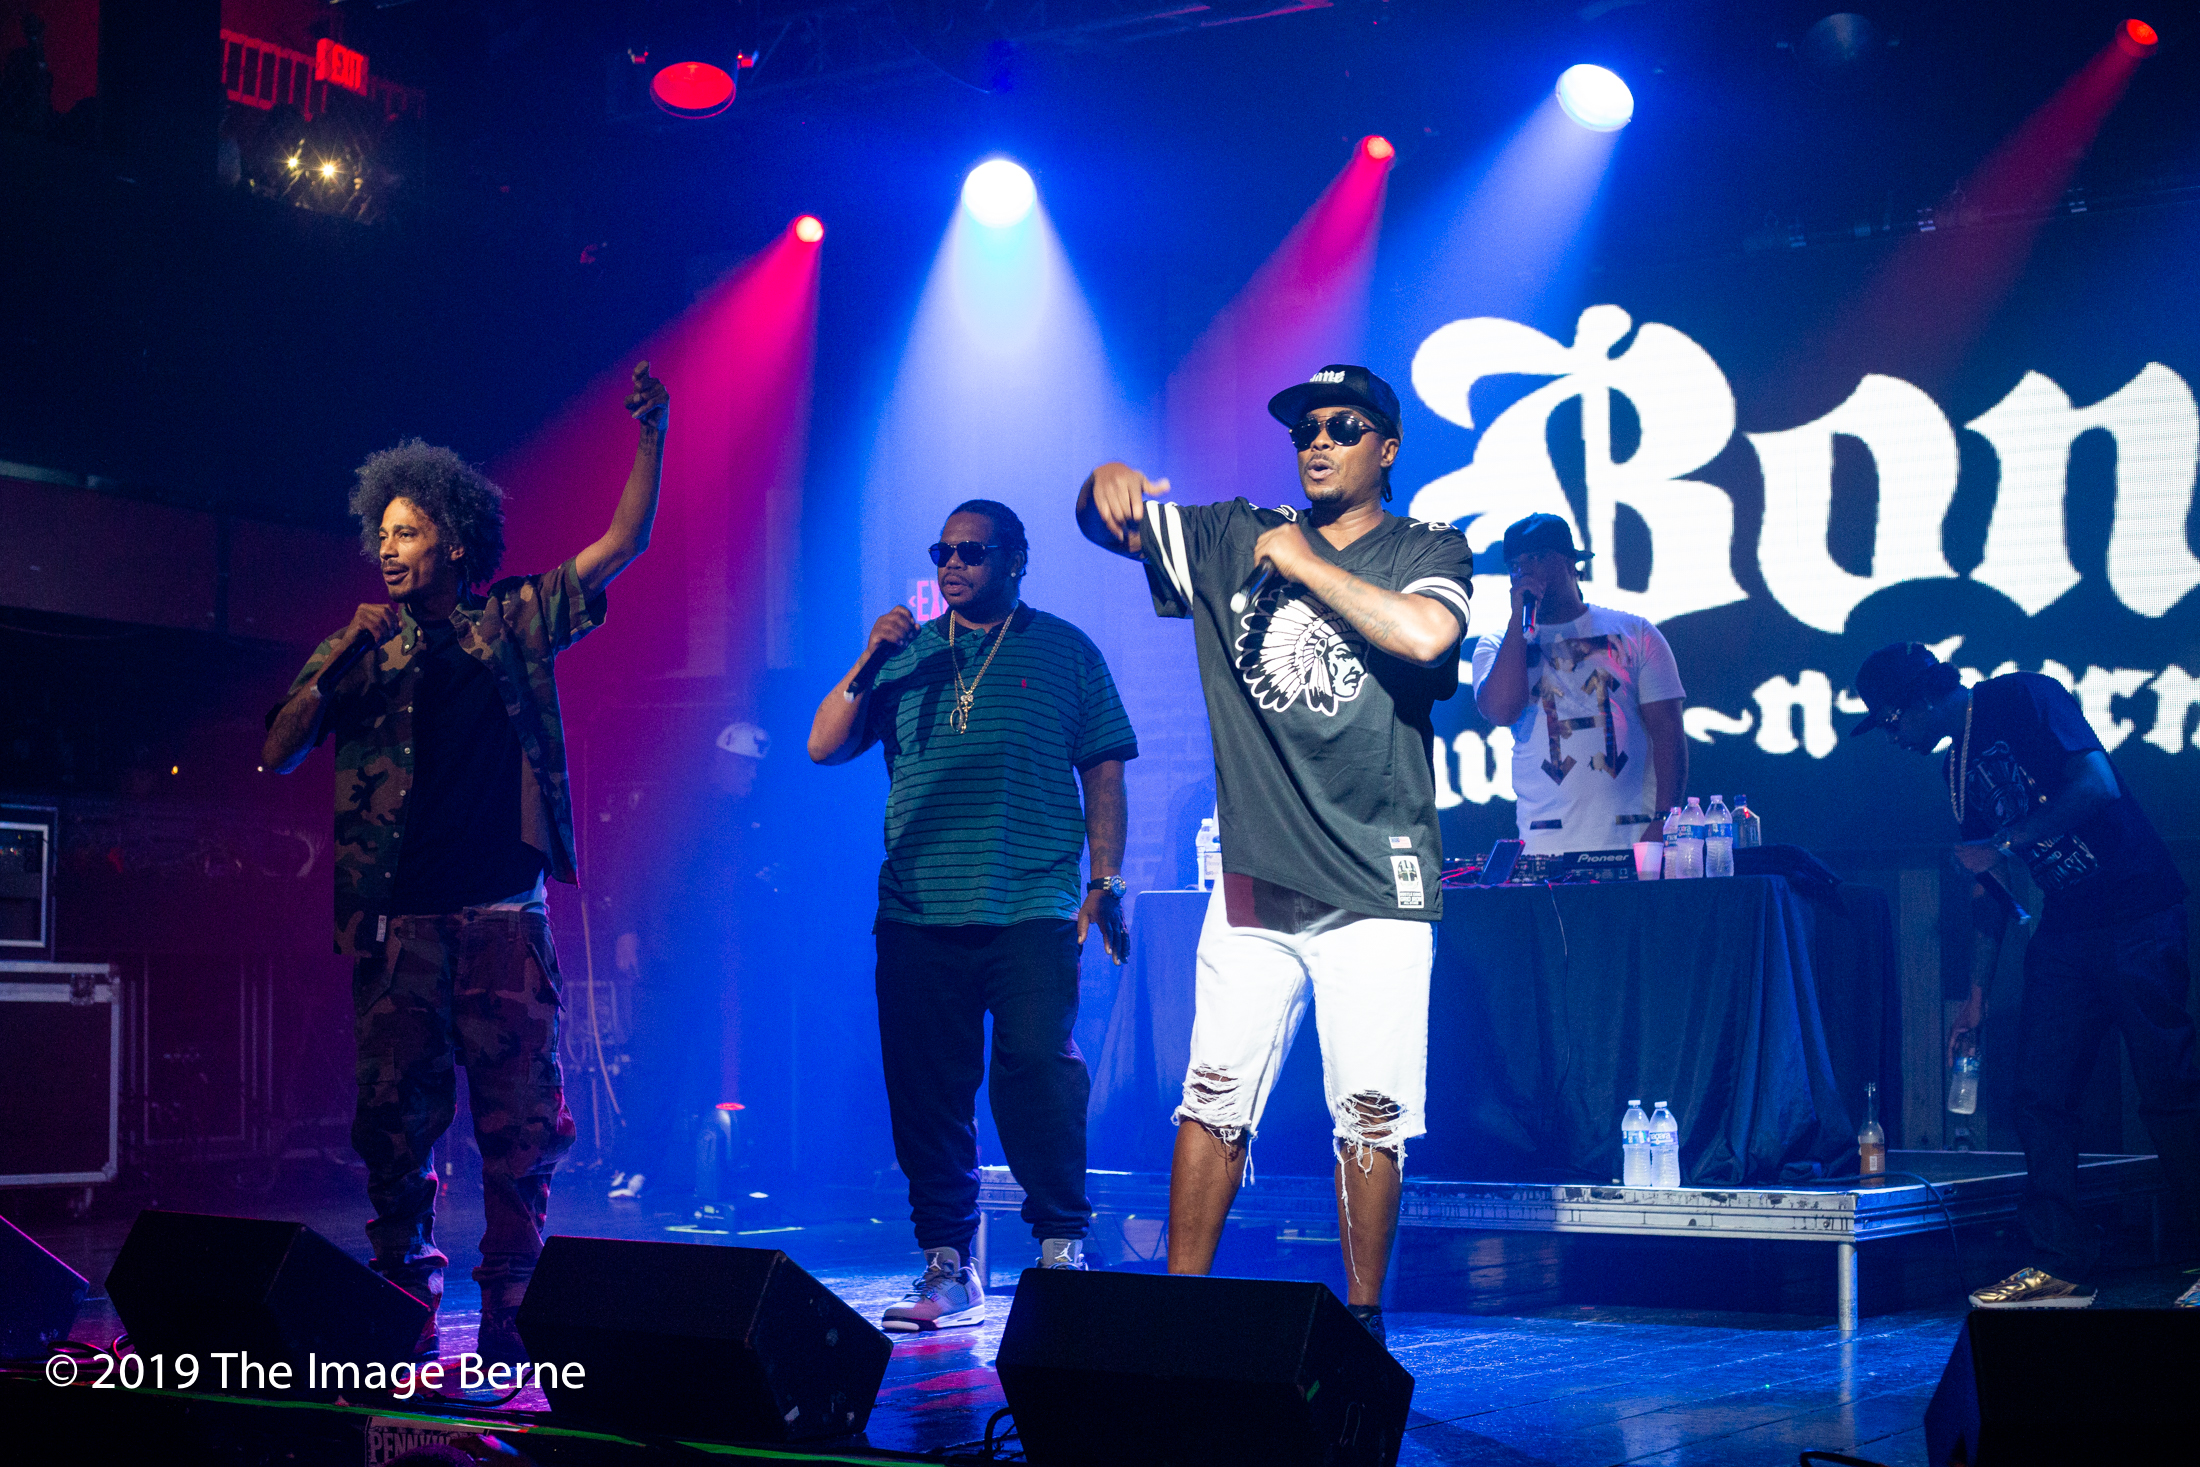 Krayzie Bone, Wish Bone, Flesh-N-Bone, Layzie Bone, and Bizzy Bone-095.jpg